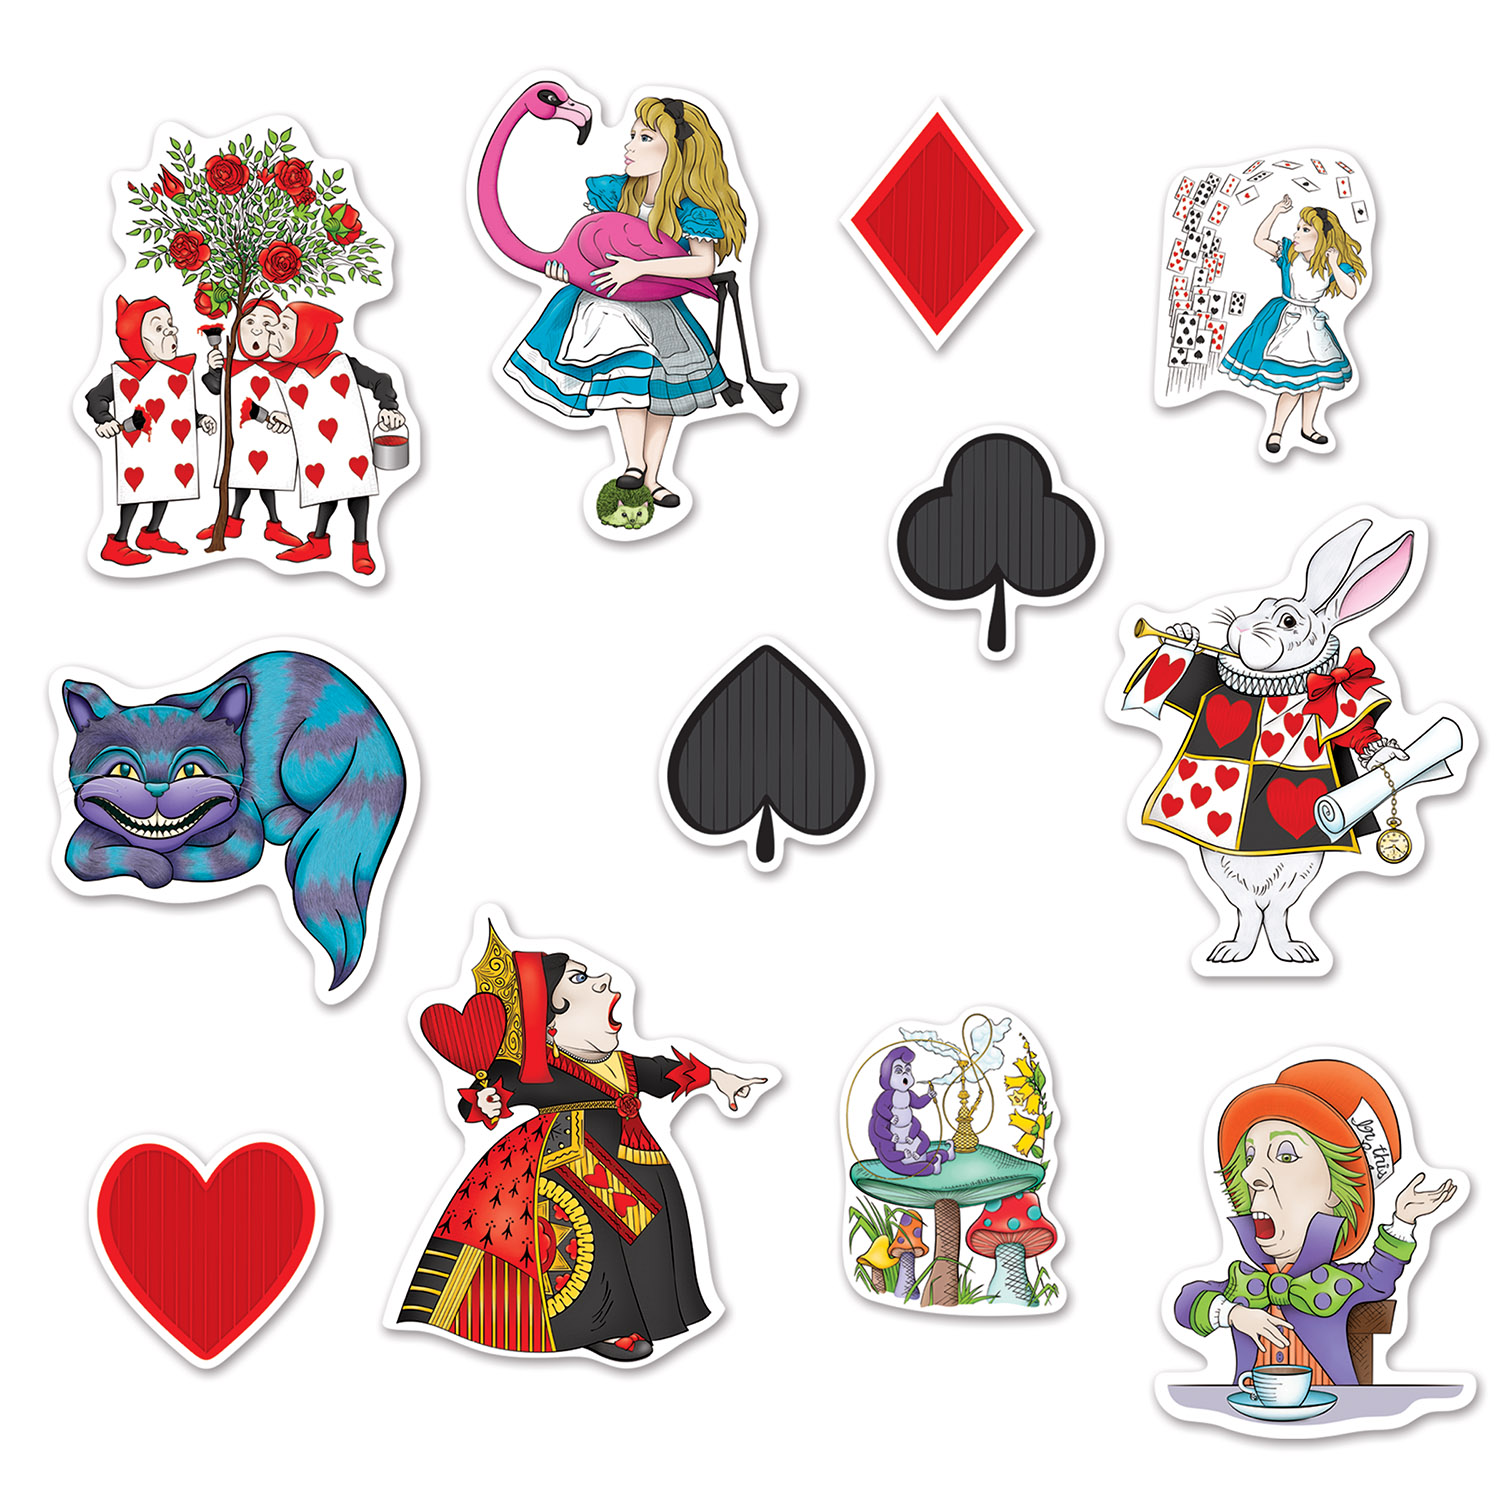 Alice In Wonderland Cutouts (Pack of 144) Alice In Wonderland, Cutouts, Wall Decor, Assorted Alice in Wonderland Decorations, Inexpensive cutouts, Wholesale party supplies, Cheap party supples